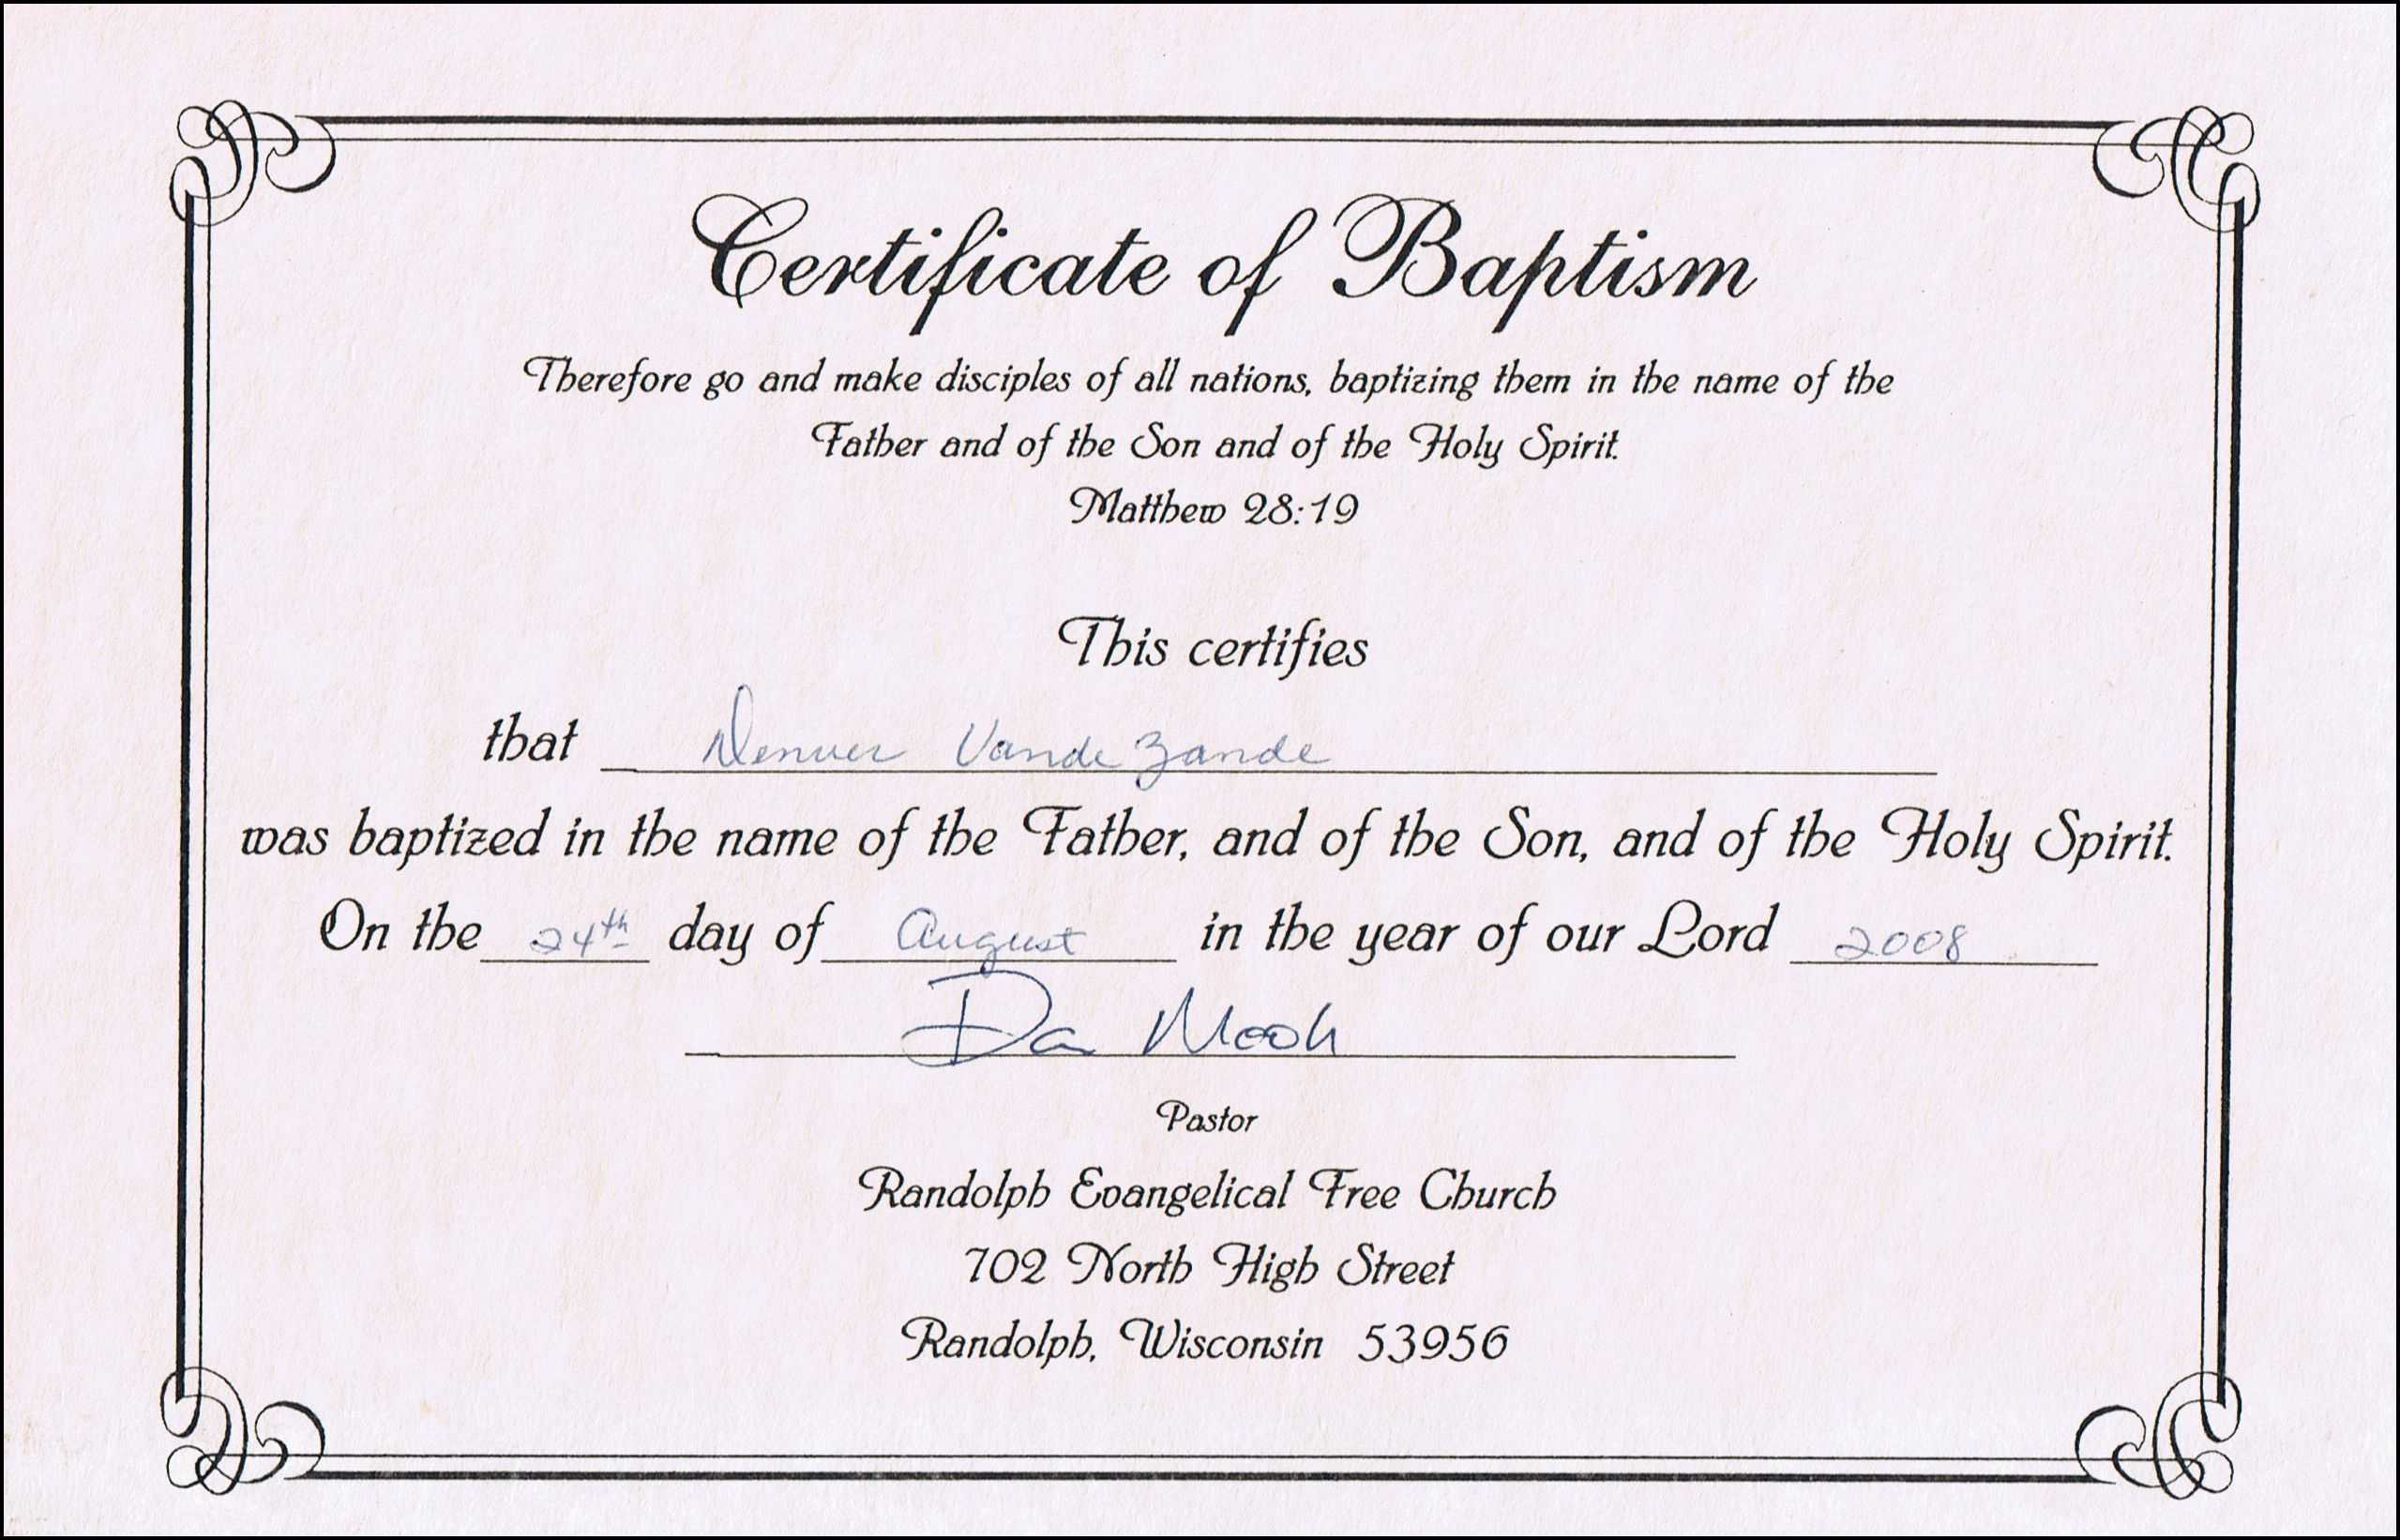 Baptism Certificate Templates For Word | Aspects Of Beauty With Baptism Certificate Template Word